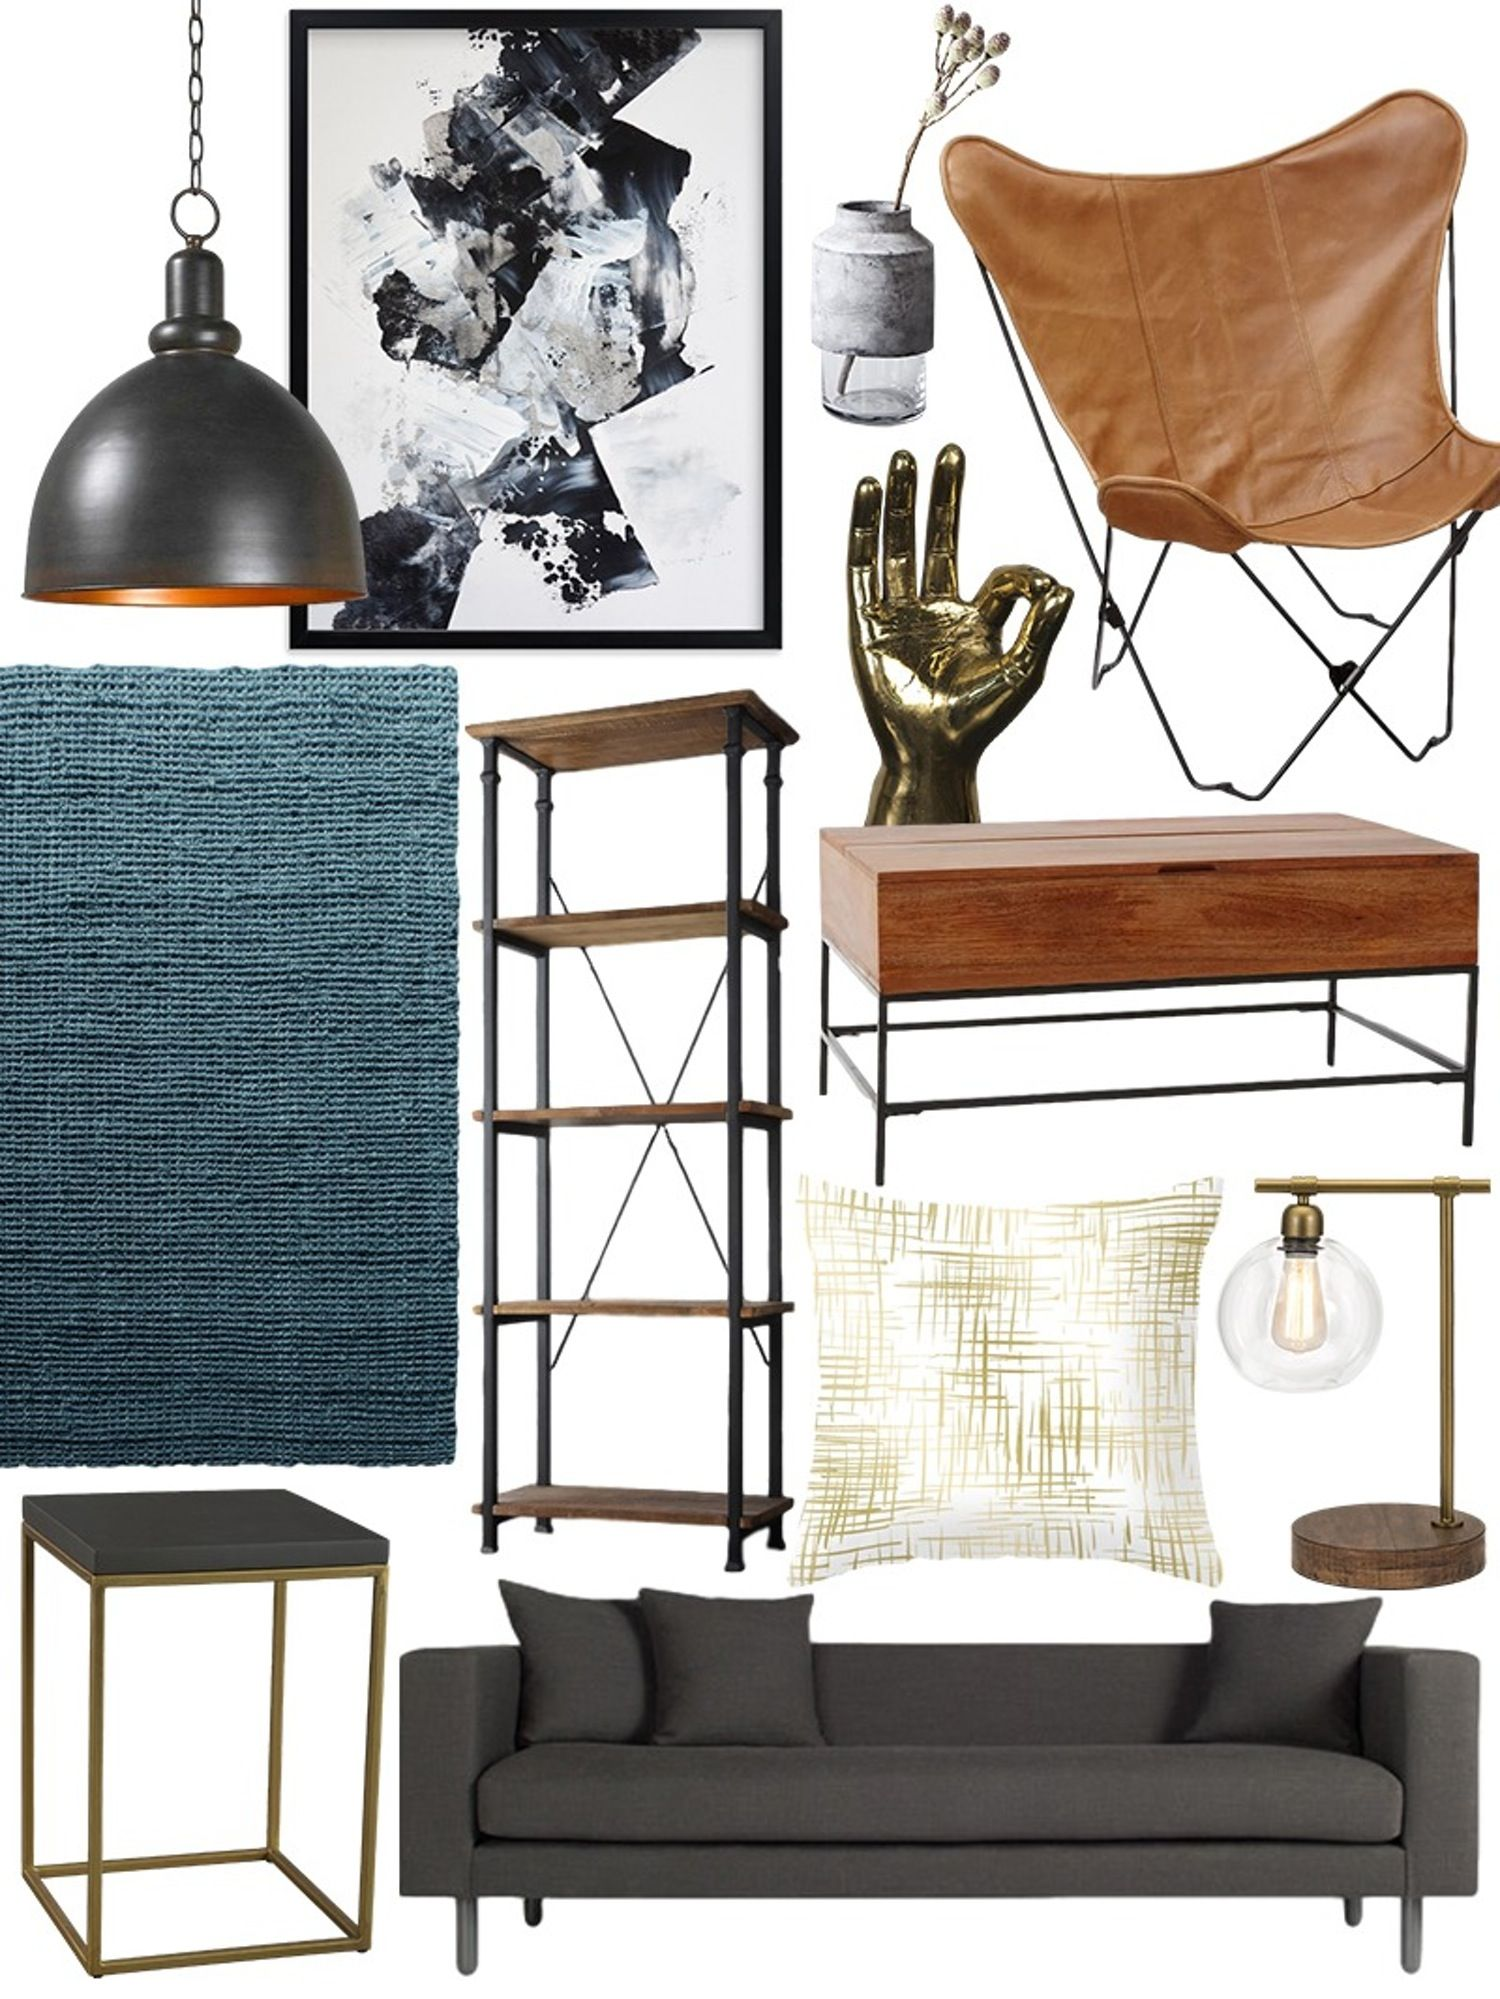 remarkable vintage industrial living room | Create the Look: Warm Industrial Living Room Shopping ...